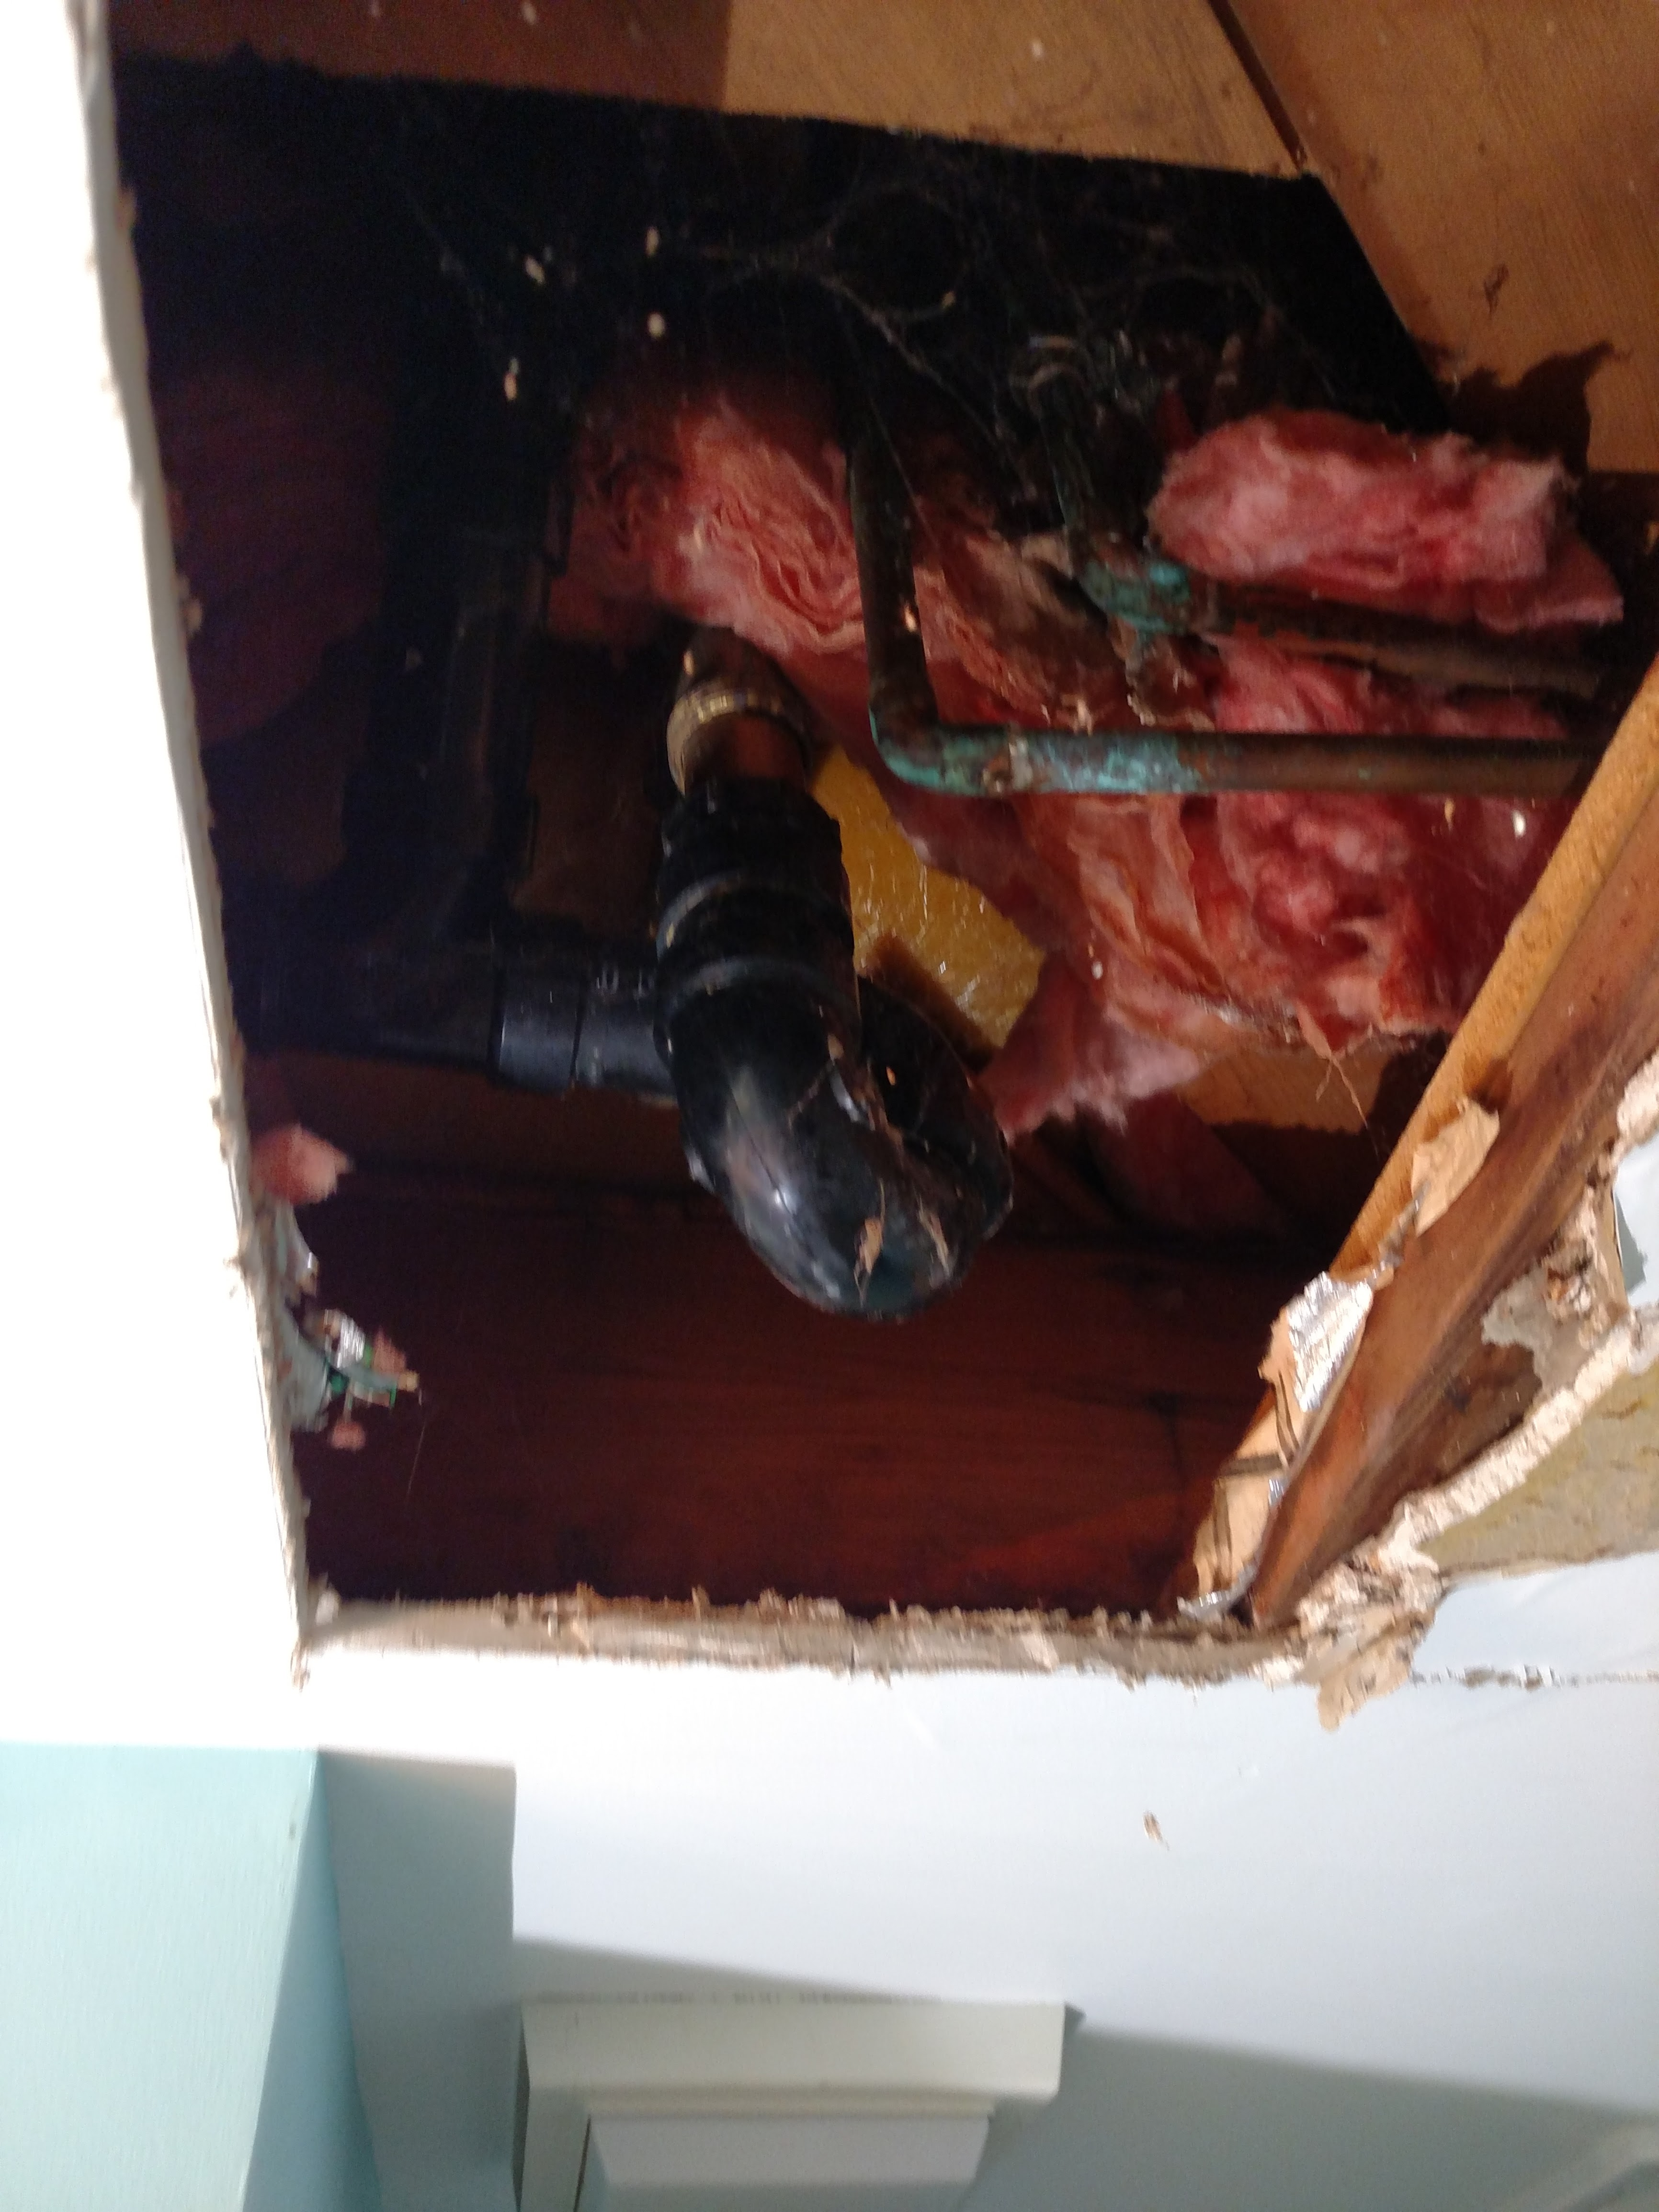 Drywall Repair Requires Removing Any Damaged Section Before Replacing Or Patching